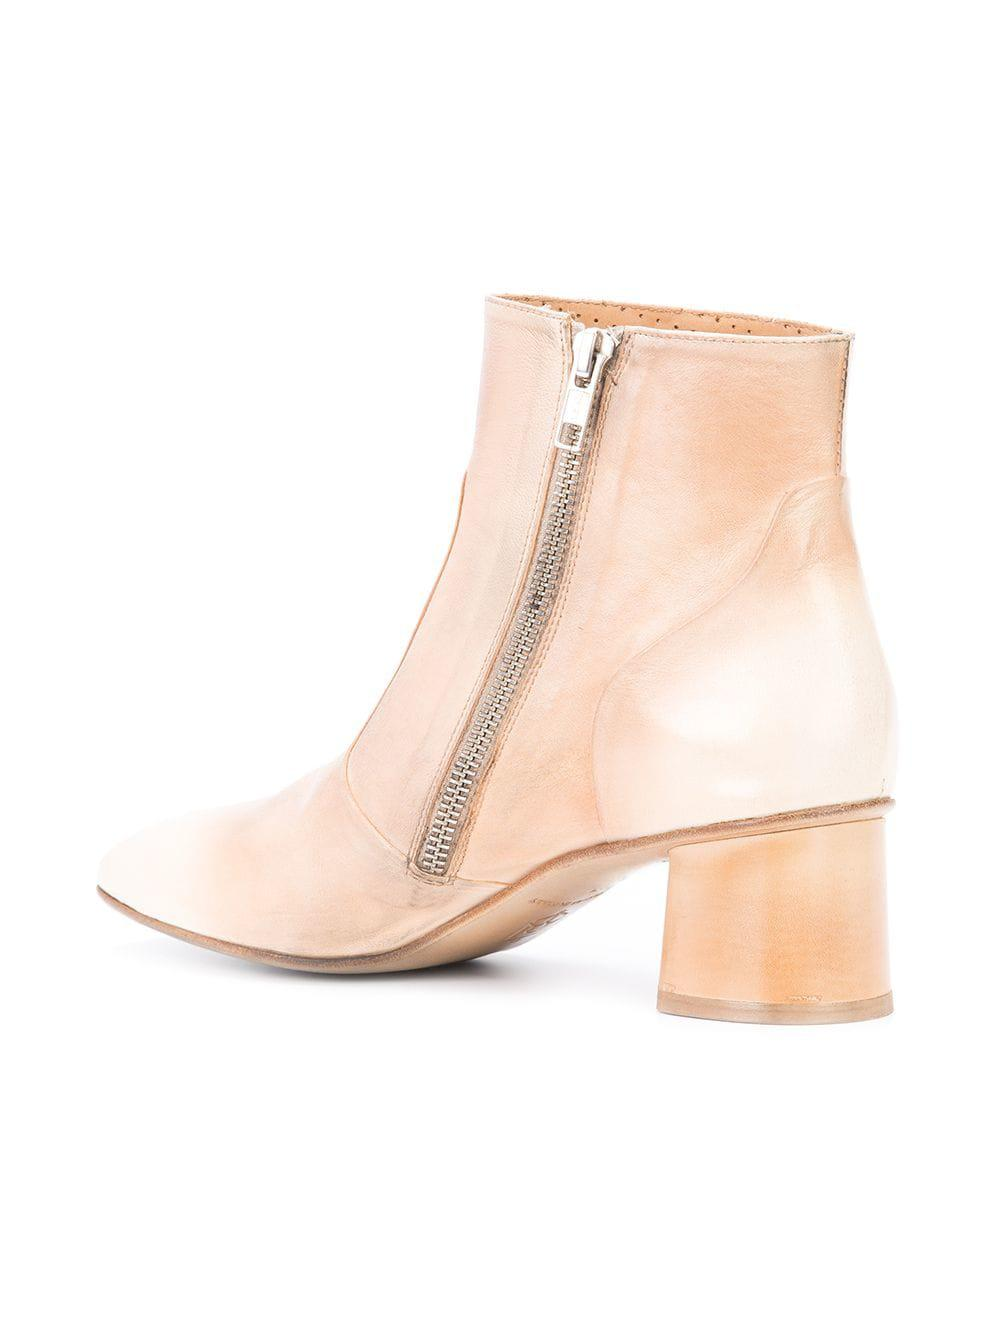 Silvano Sassetti Leather Round Toe Ankle Boots in Natural